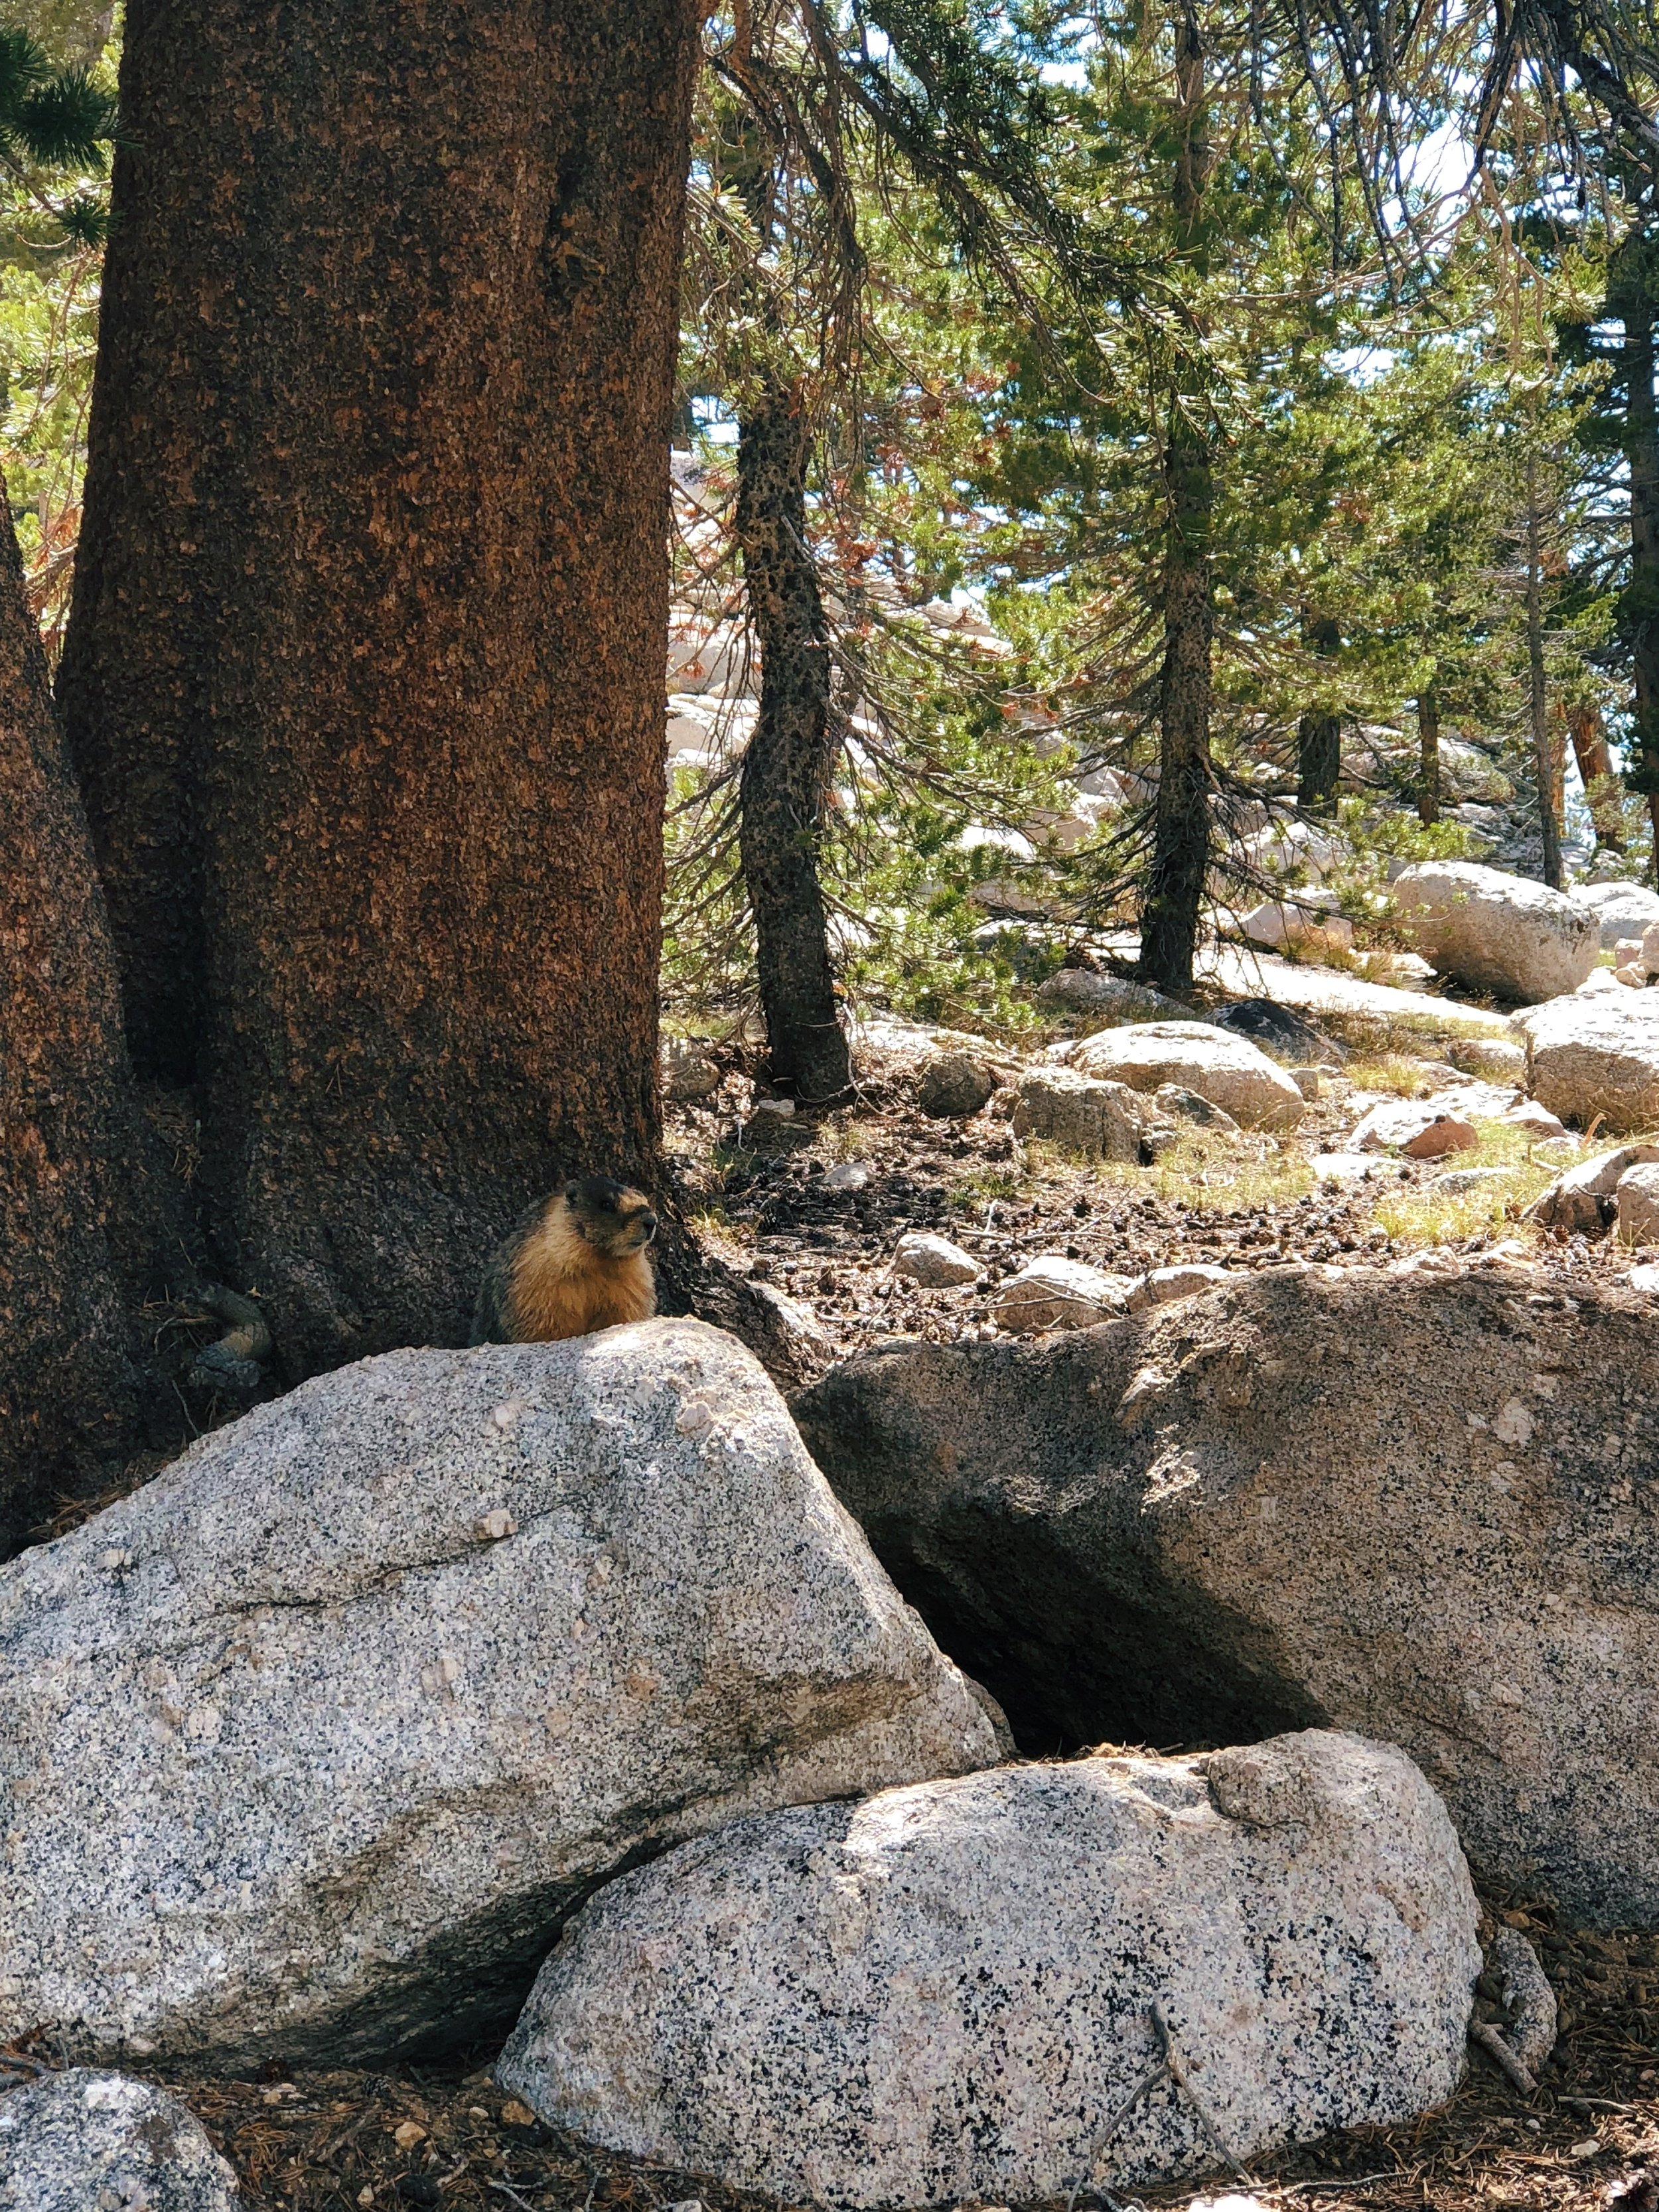 Marmots are everywhere!